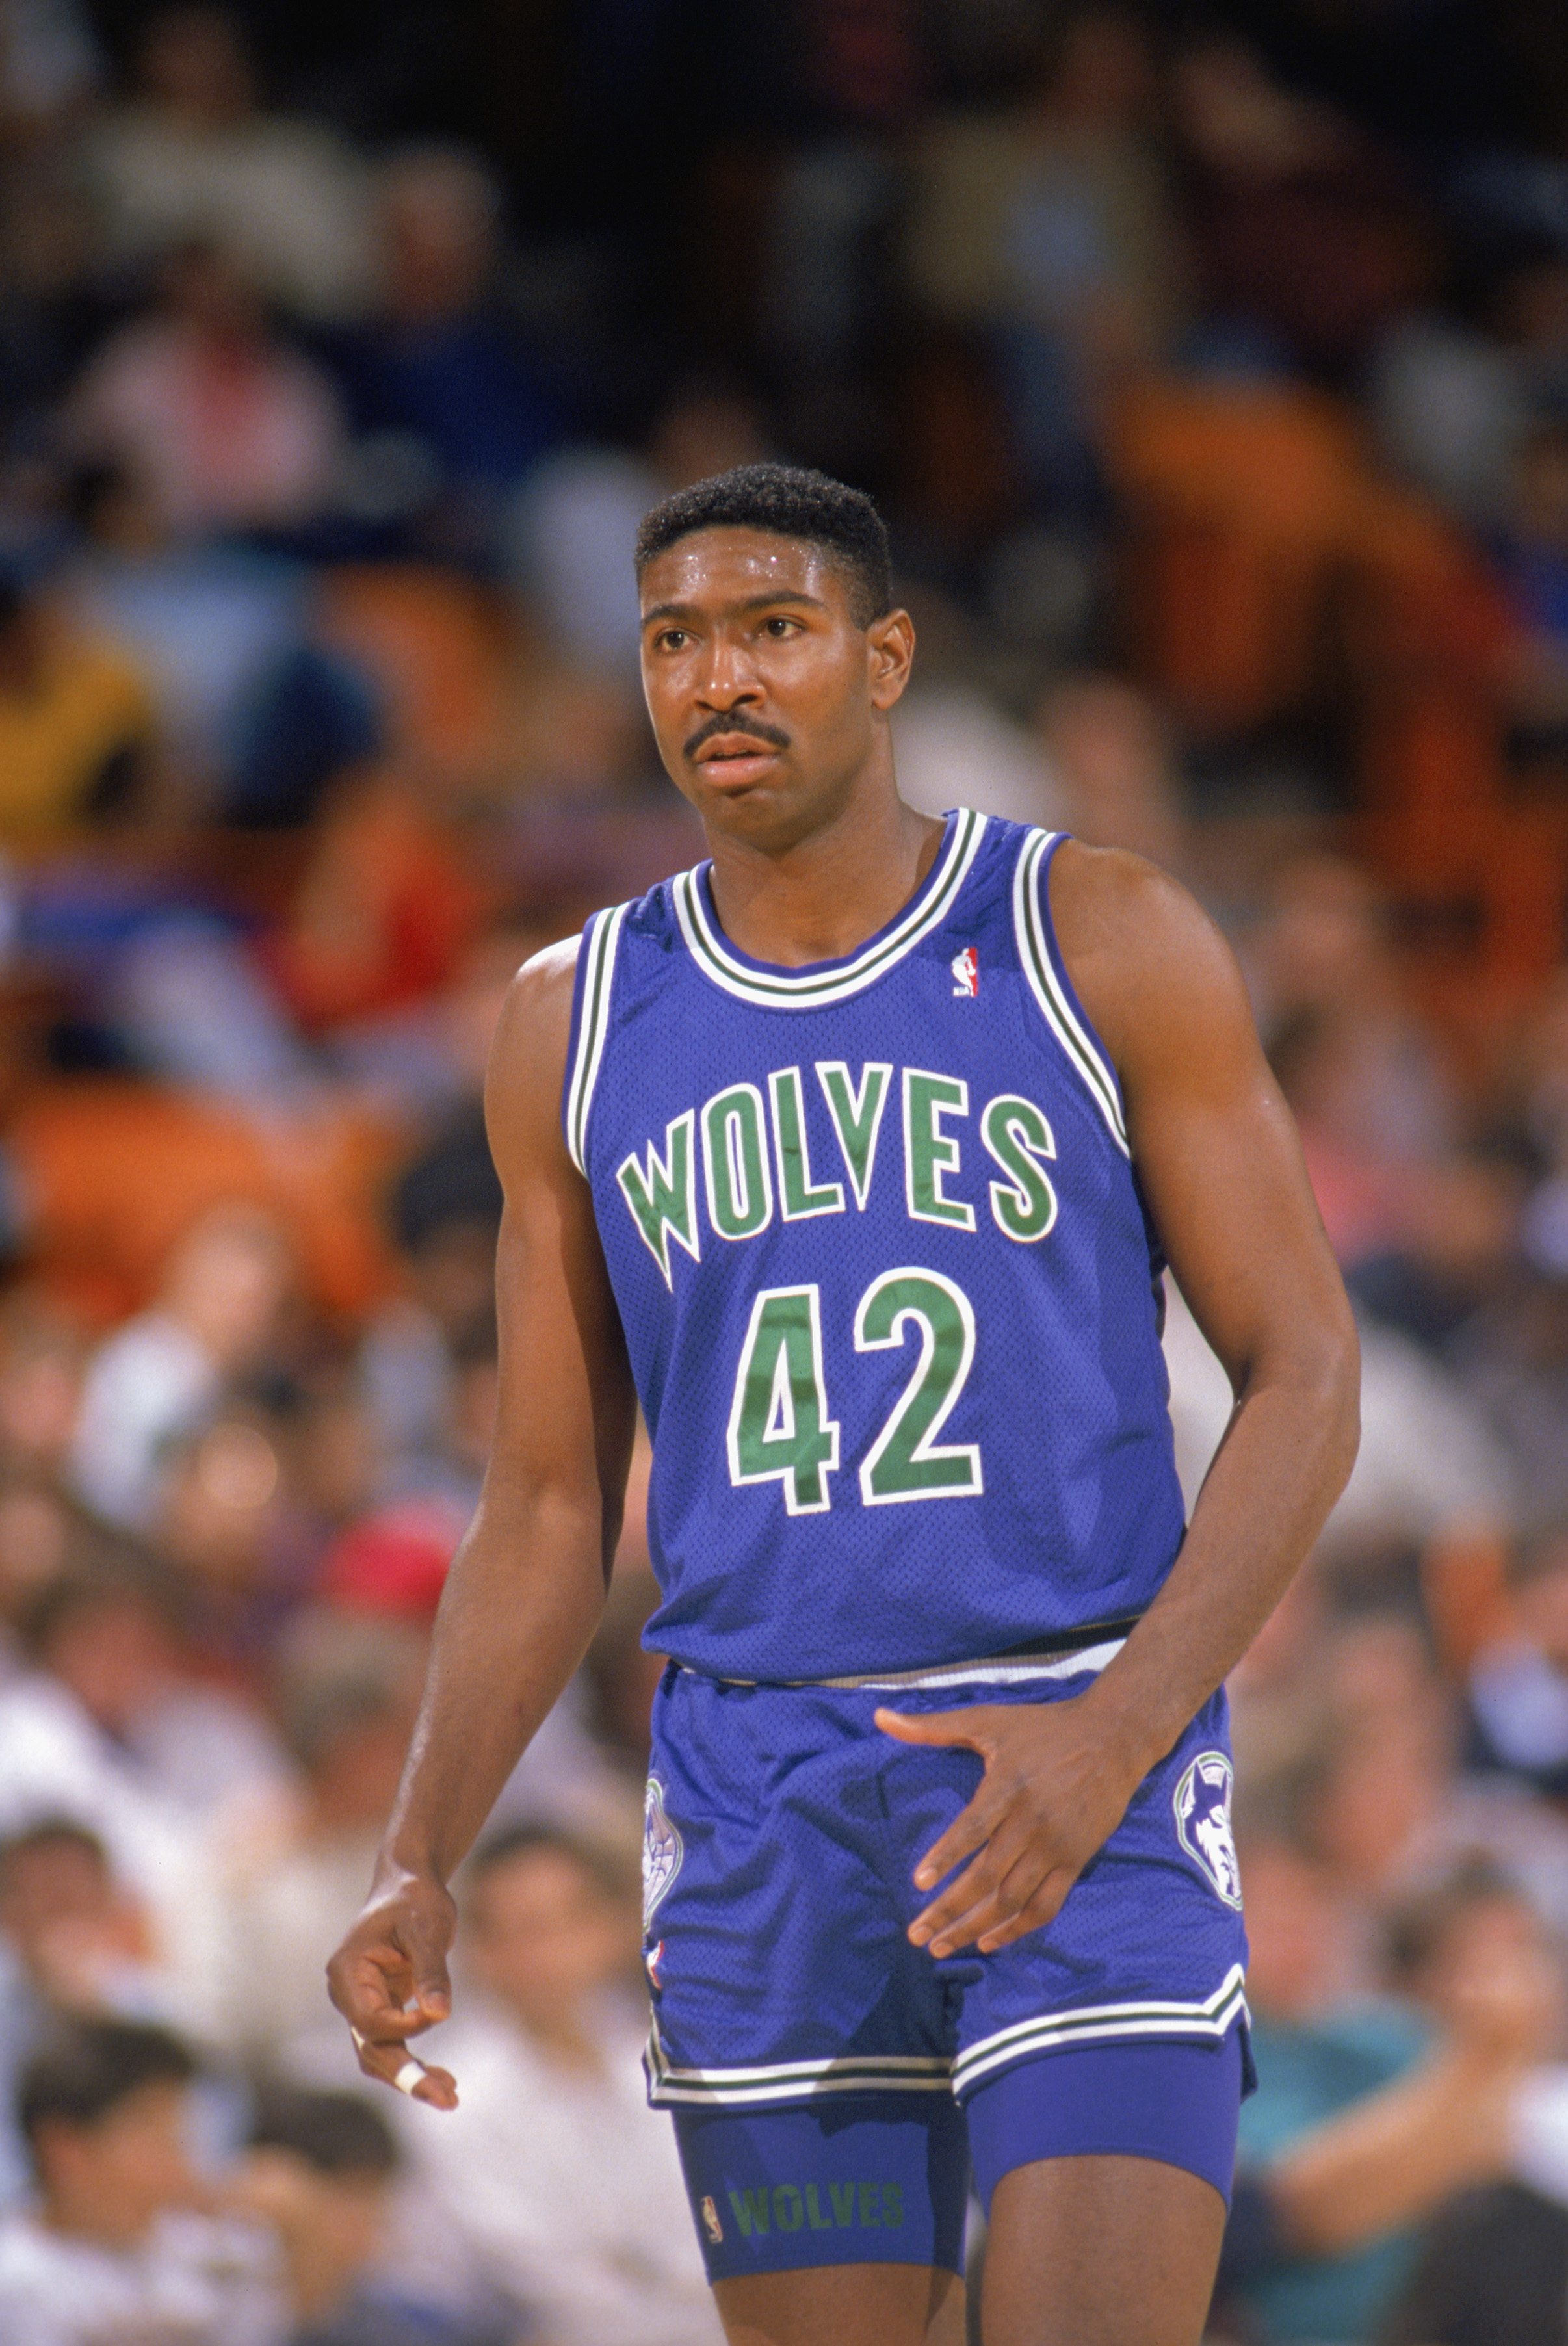 LOS ANGELES - 1990:  Sam Mitchell #42 of the Minnesota Timberwolves walks on the court during a game against the Los Angeles Lakers at the Great Western Forum in Los Angeles, California during the 1989-1990 NBA season.  (Photo by Ken Levine/Getty Images)